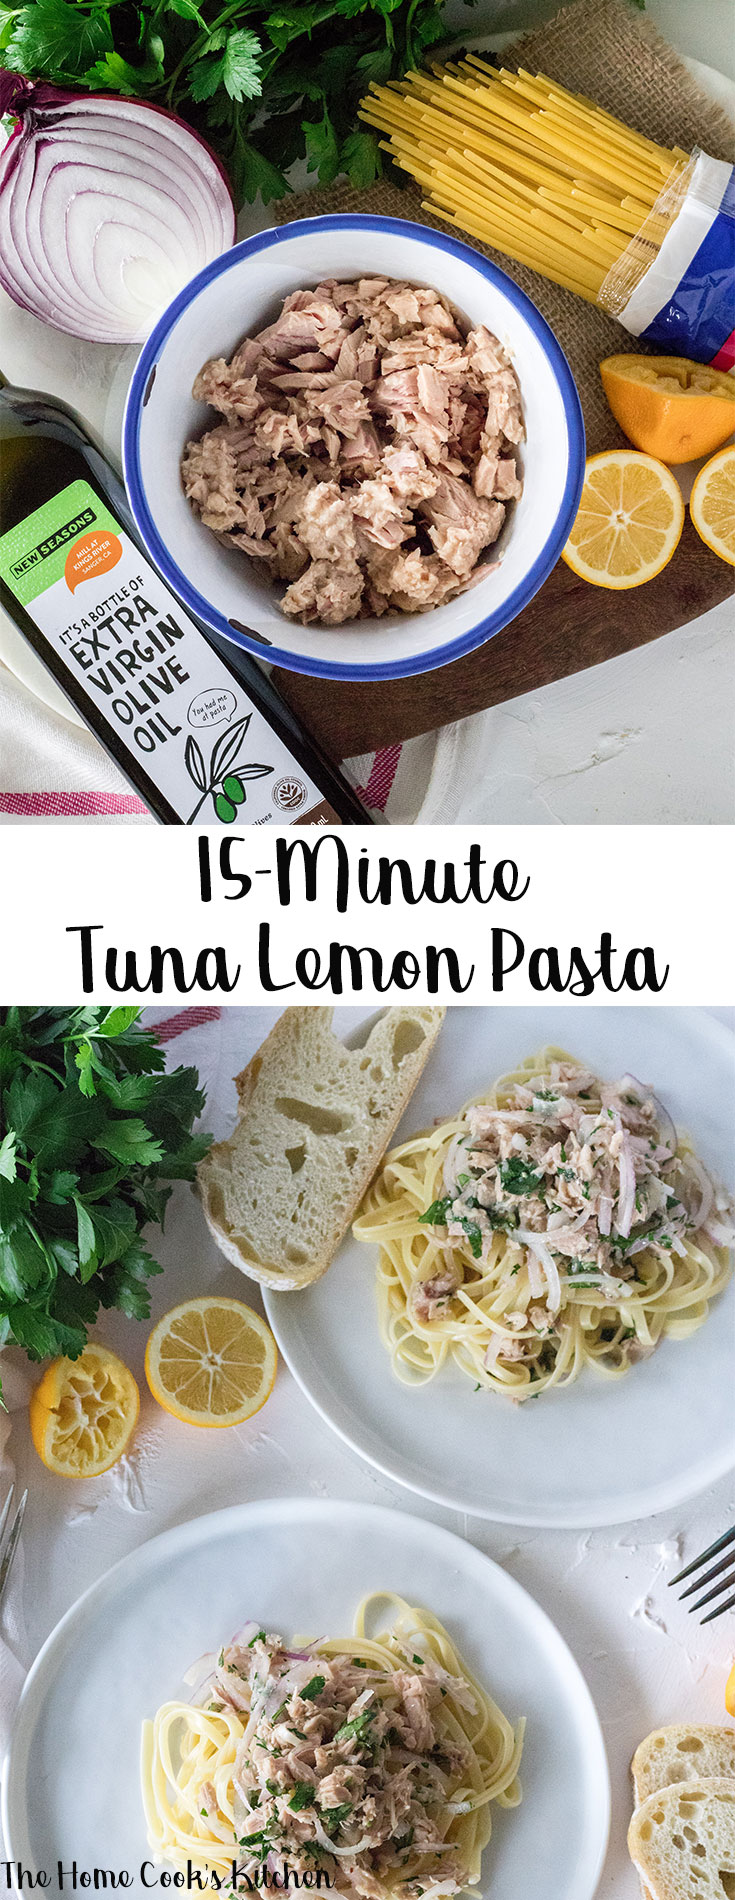 This 15-minute tuna lemon pasta is the perfect meal for busy people on the go. Fresh, fast and delicious, this pasta is a great weeknight meal idea! #pasta #tunapasta #springrecipe